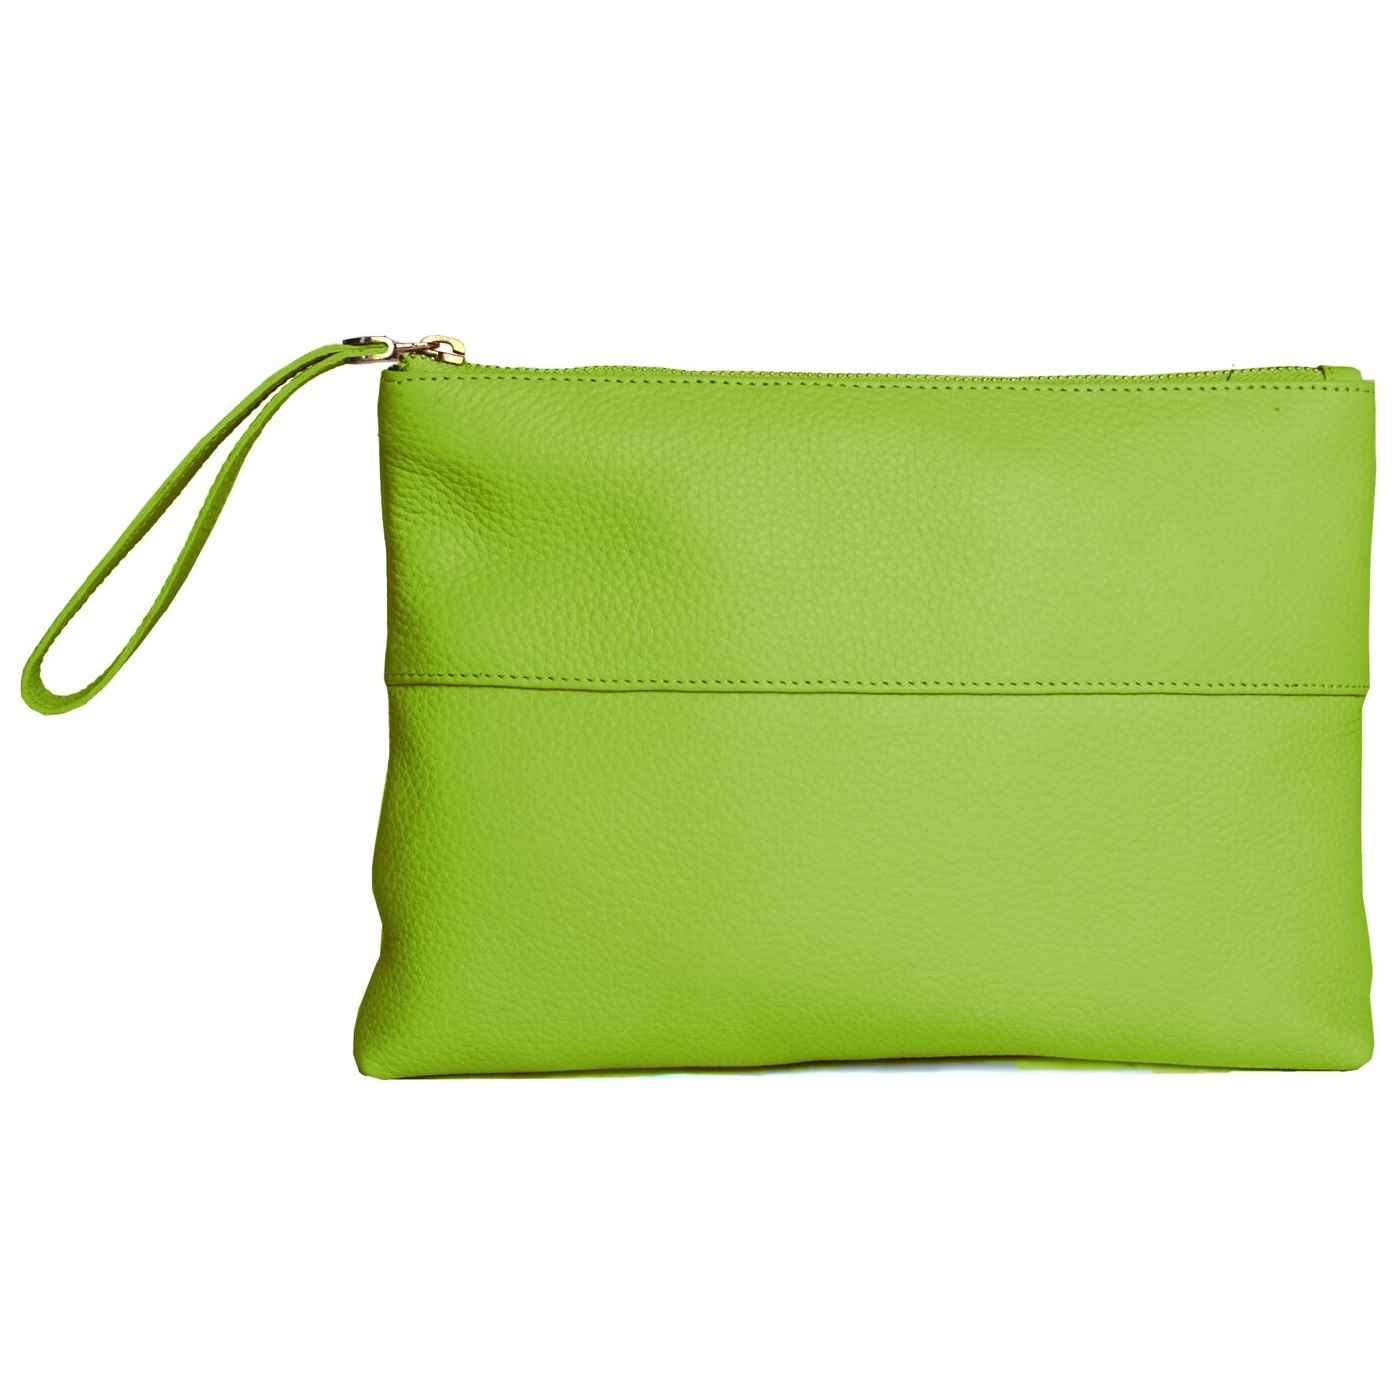 Eastern Counties Leather Womens/Ladies Courtney Clutch Bag (One size) (Parrot)